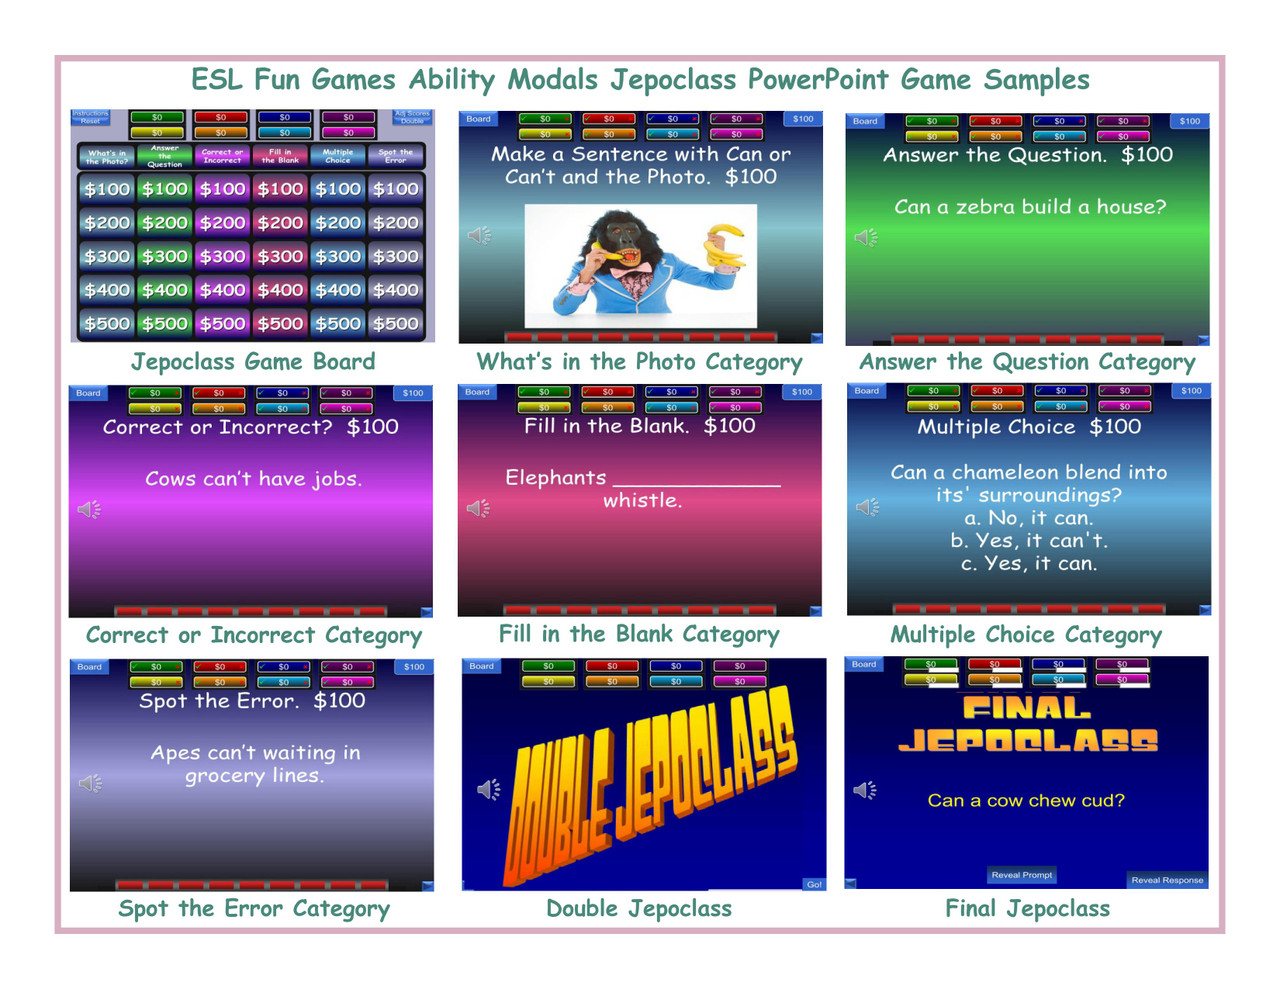 Ability Modals Jepoclass PowerPoint Game